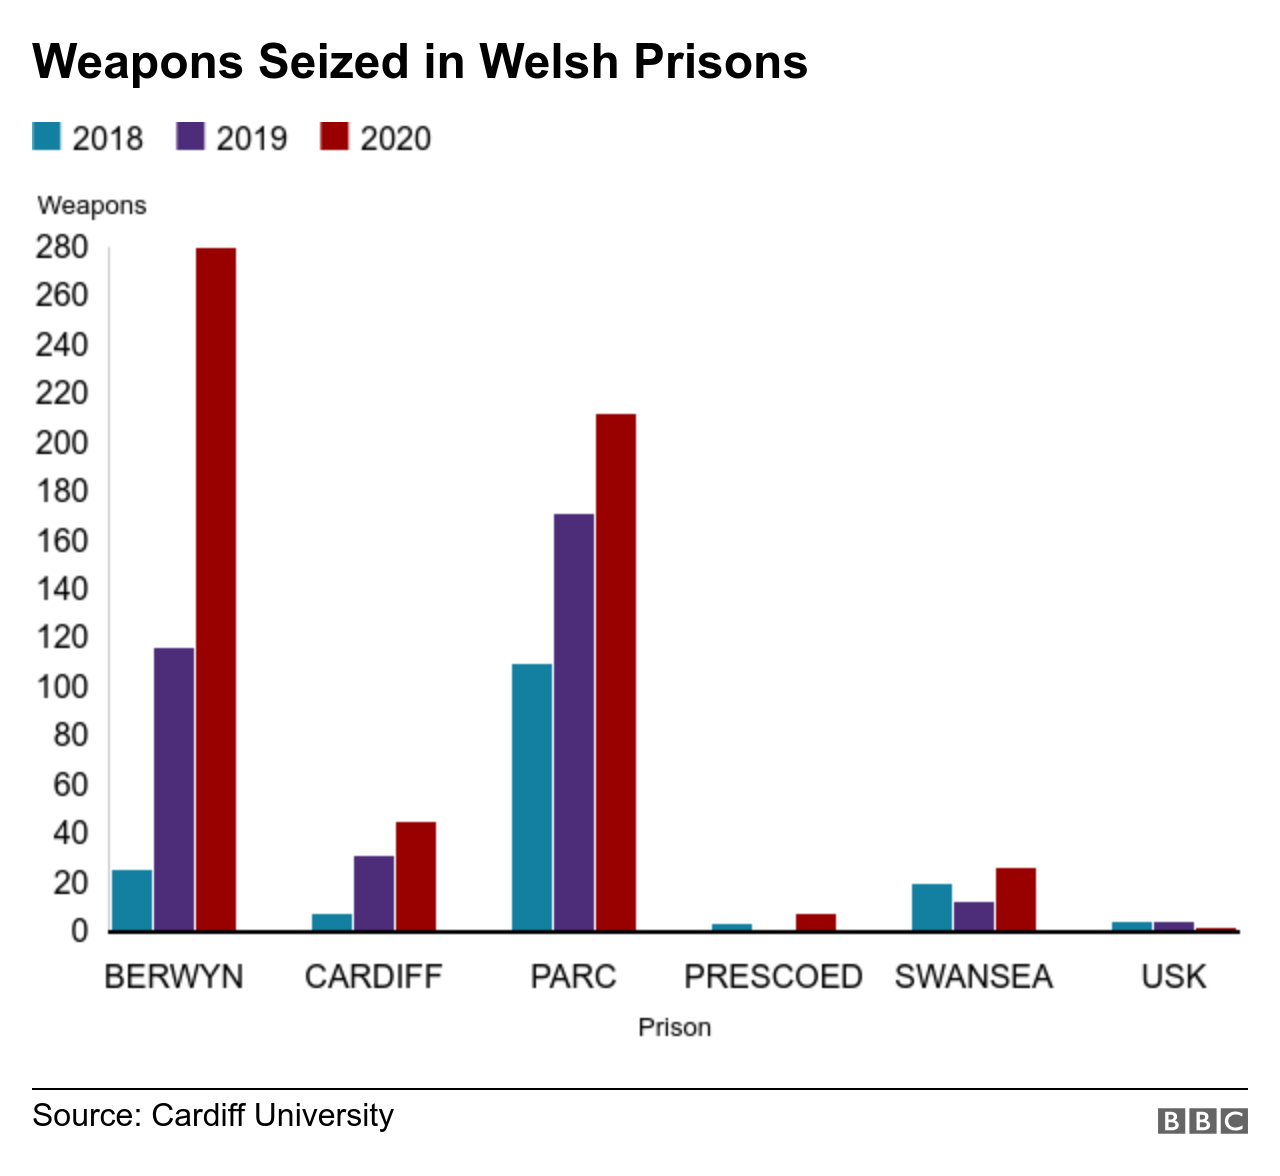 Graph showing number of weapons seized in Welsh prisons 2018-2020